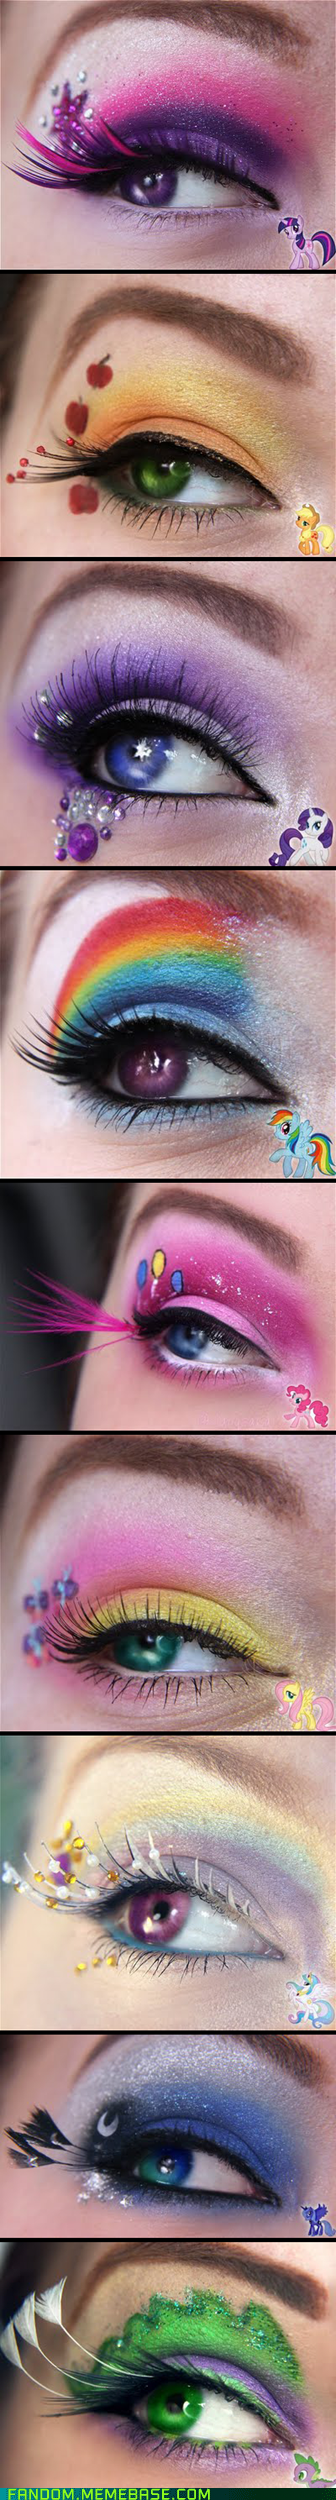 best of week,Bronies,cosplay,makeup,my little pony